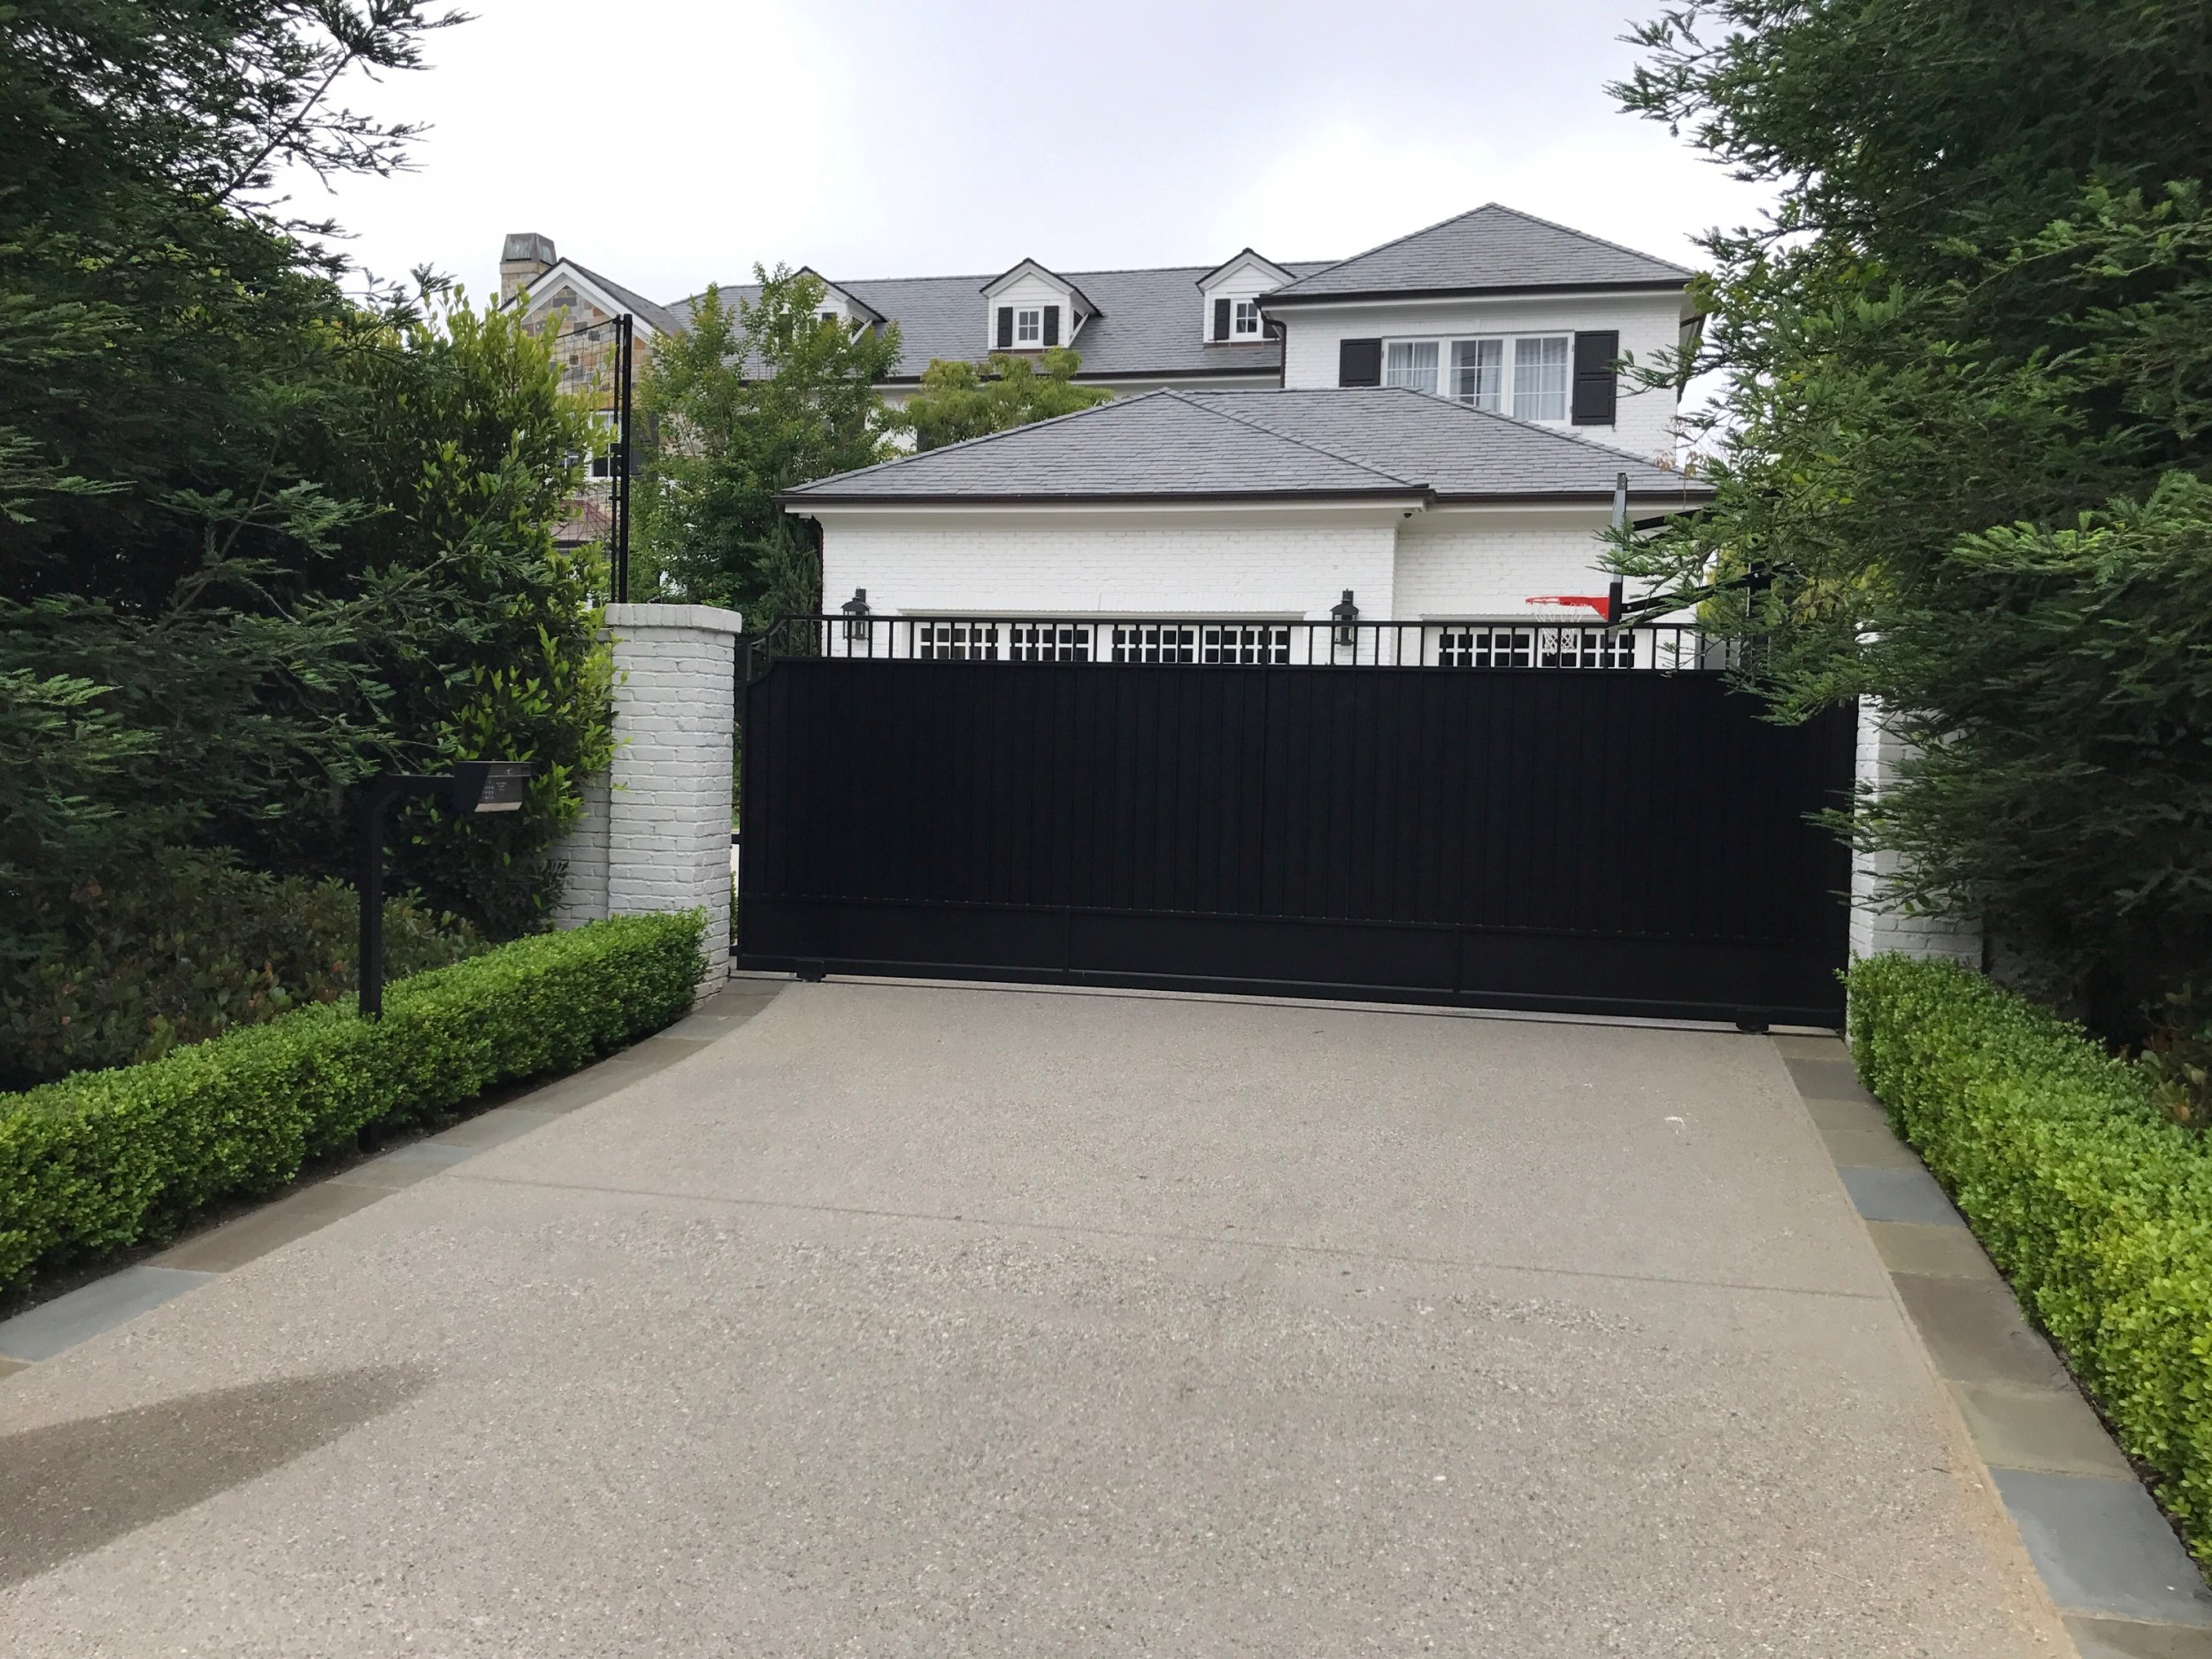 LeBron James Responds to Racist Graffiti on his L.A. Home ...